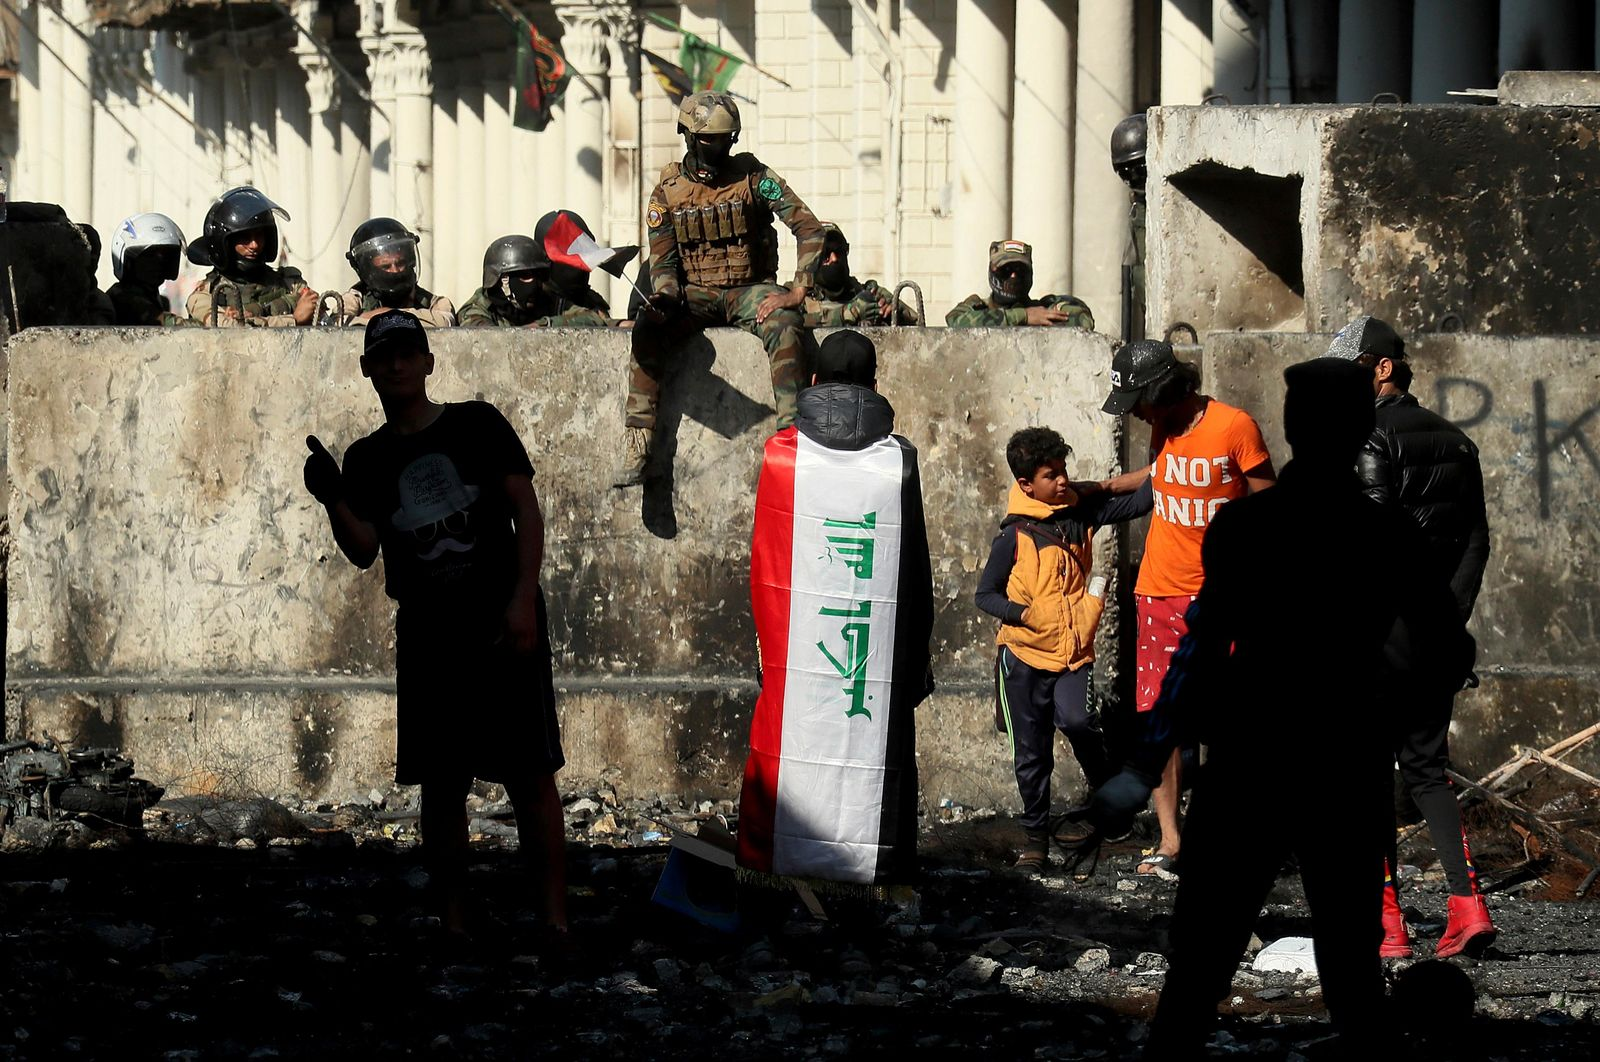 Iraqi security forces and anti-government protesters rest after both sides shake hands and converse in a rare moment of calm in hostilities called to allow time for rest after clashes in Baghdad, Iraq, Saturday, Nov. 30, 2019. (AP Photo/Hadi Mizban)